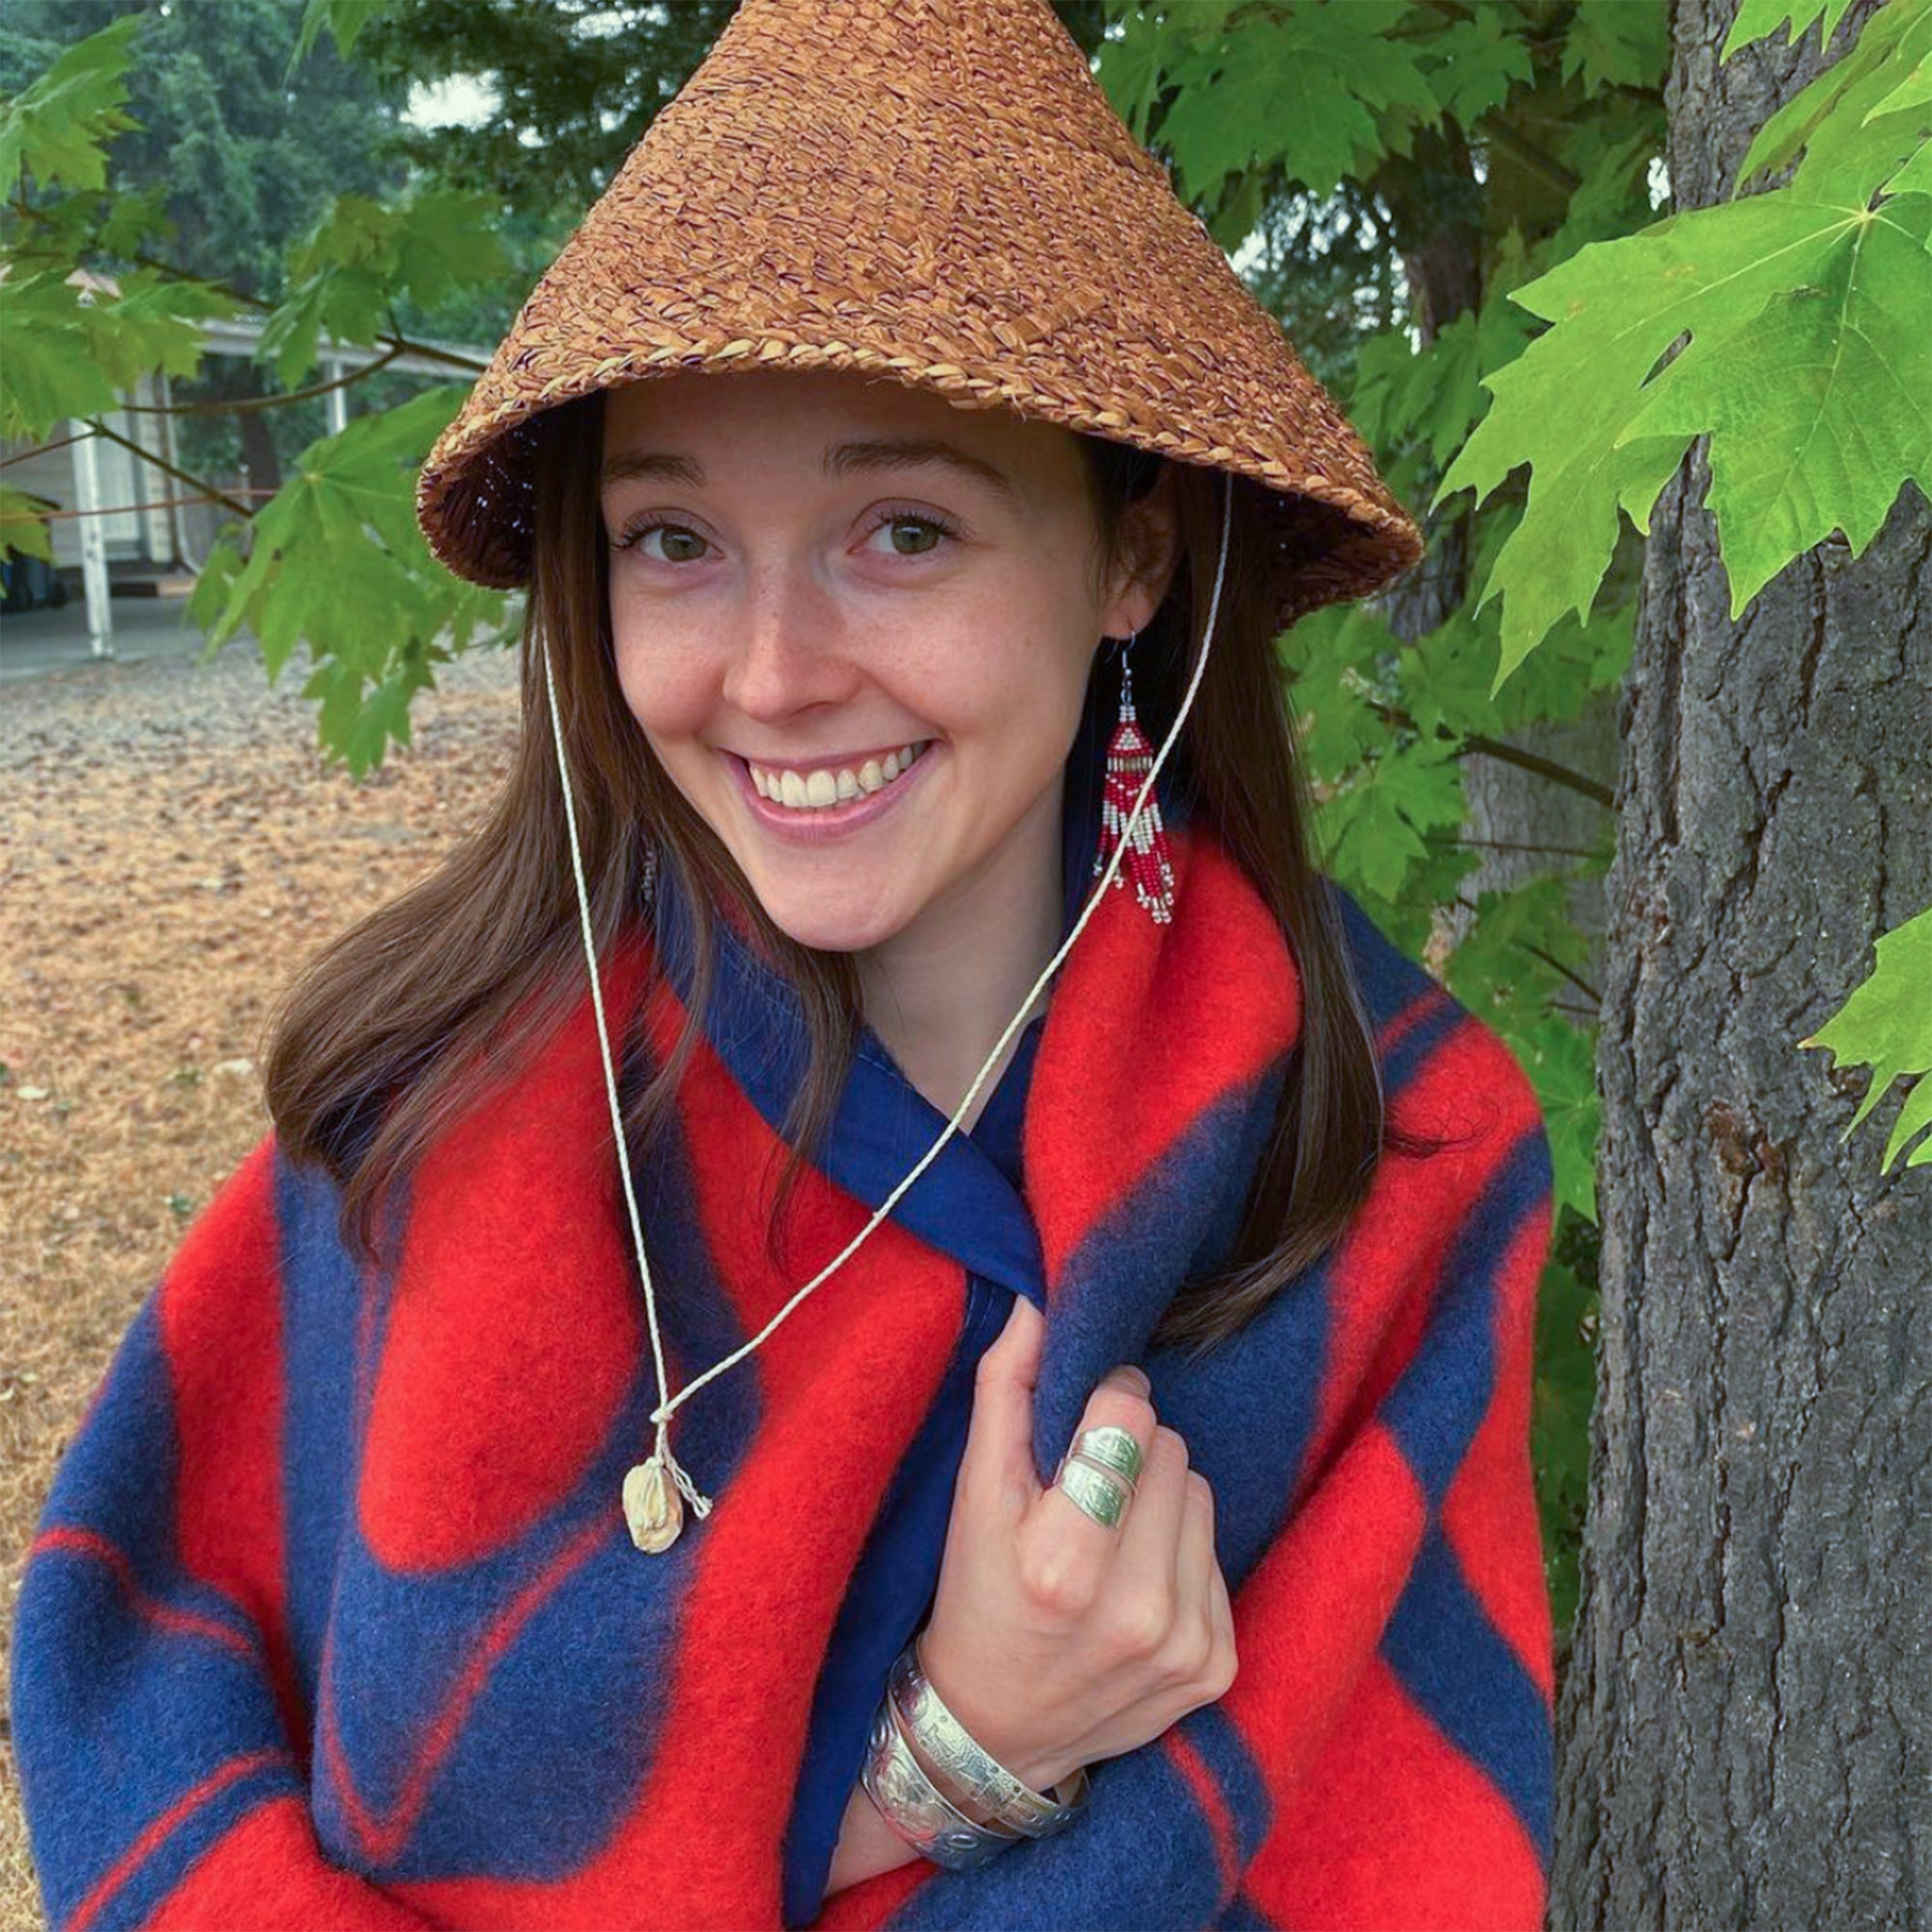 A-woman-with-a-cedar-hat-smiles-and-stands-wrapped-in-a-red-and-blue-wool-blanket-with-Northwest-Coast-designs.